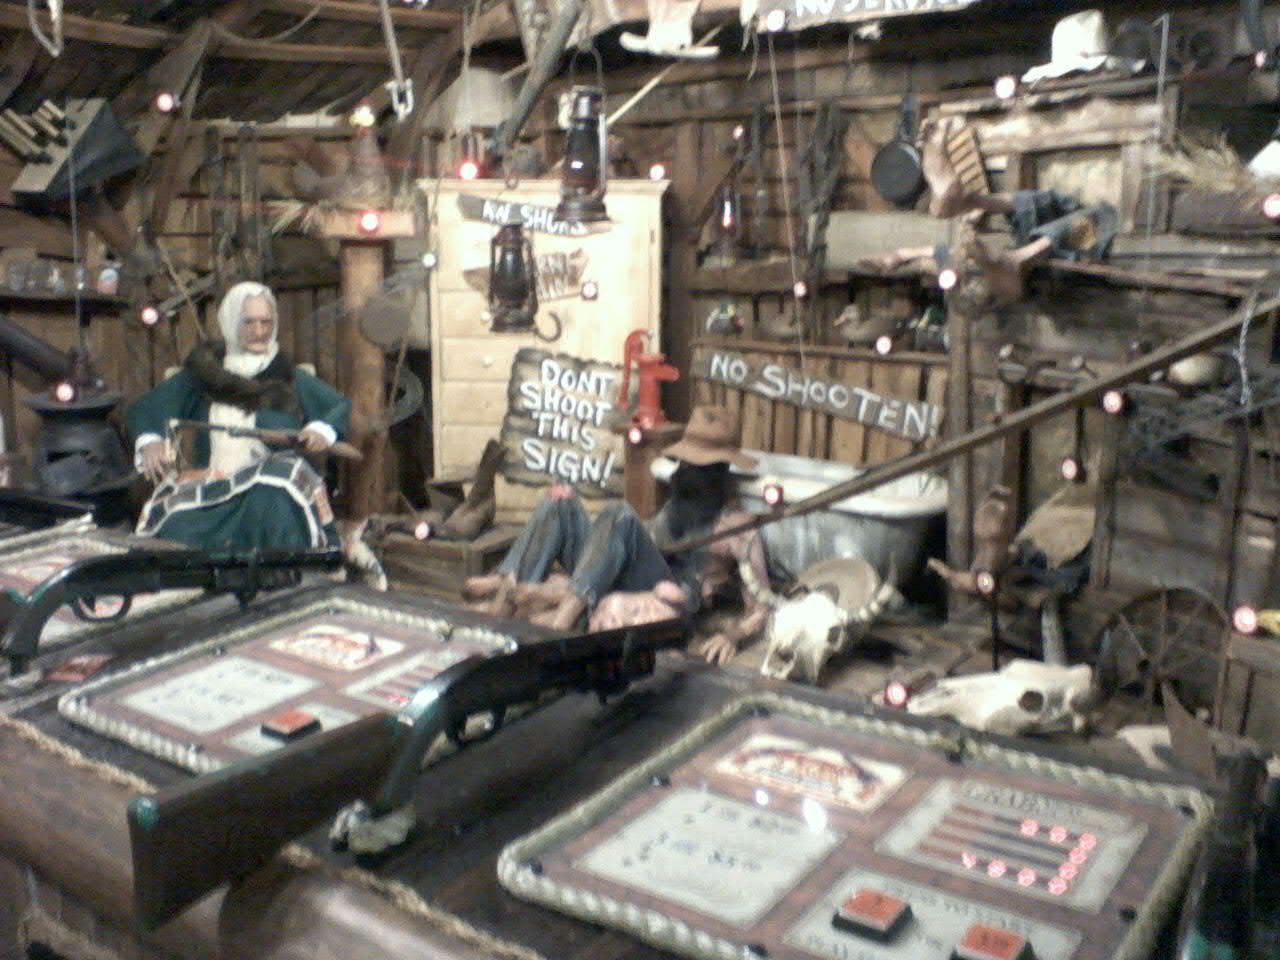 Hatfield & McCoys Dinner Show, Pigeon Forge, Tennessee -- Pic Taken by me